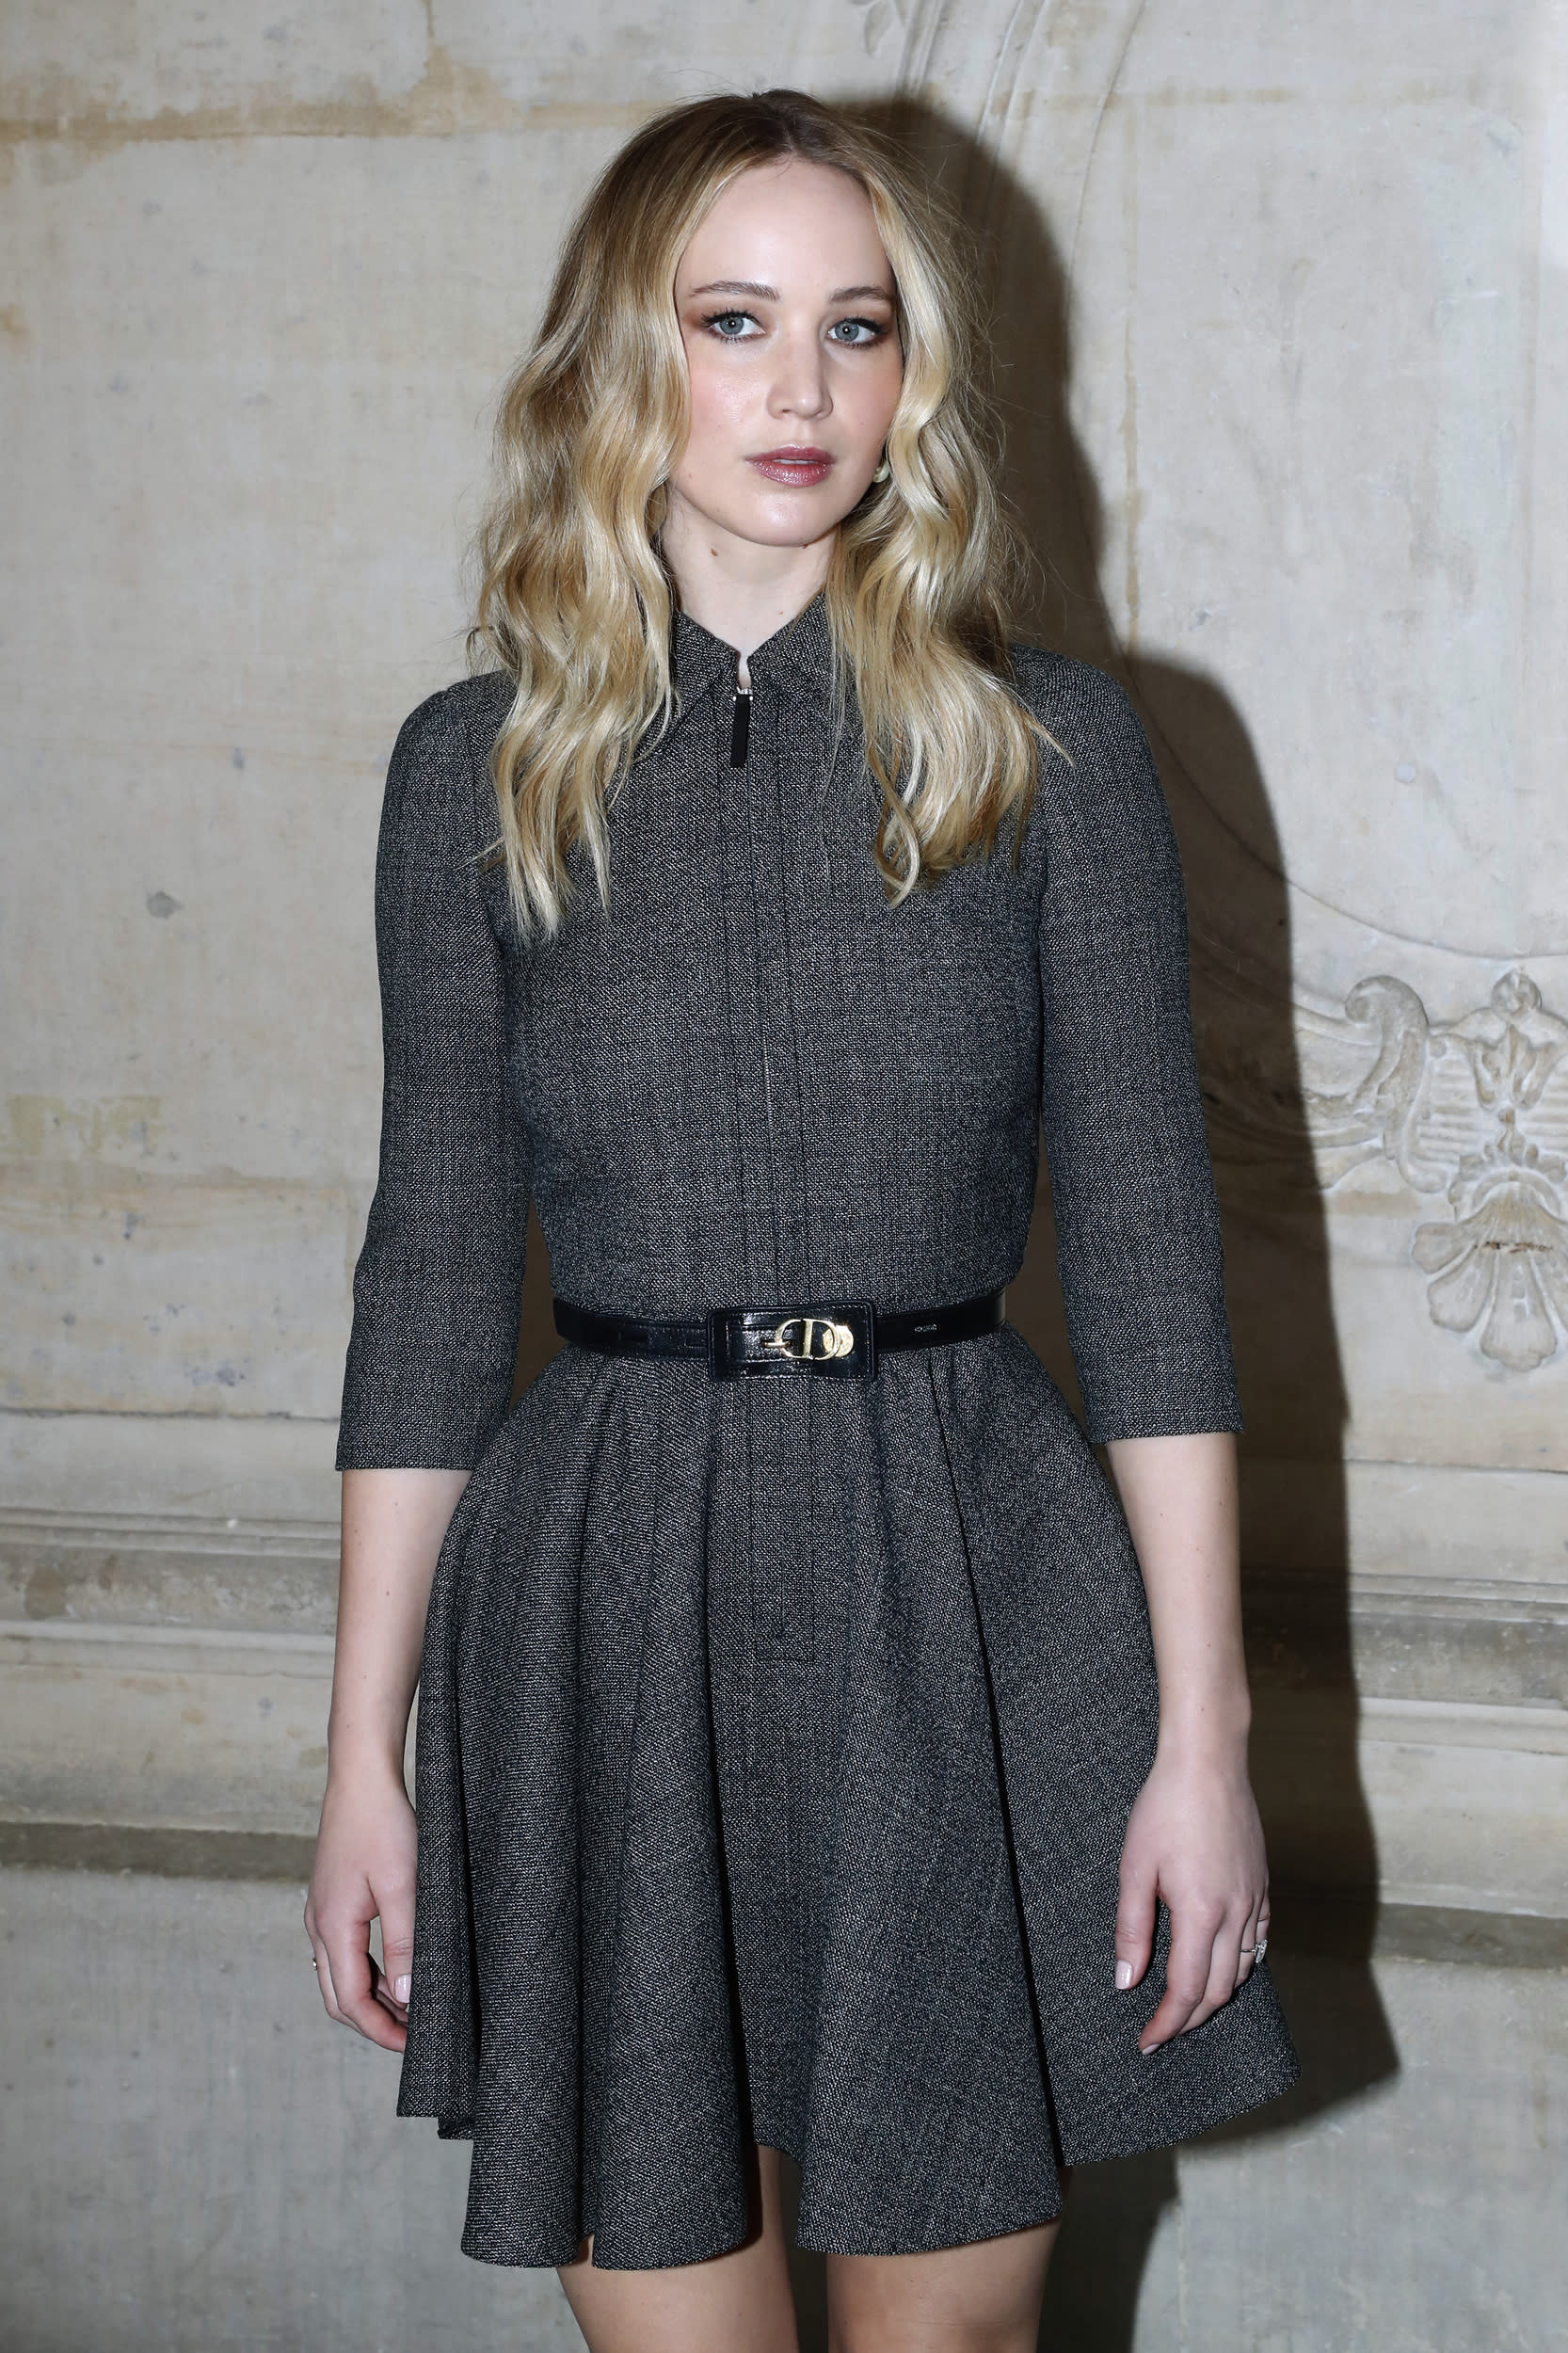 PARIS, FRANCE - FEBRUARY 26: Actress Jennifer Lawrence attends the Christian Dior show as part of the Paris Fashion Week Womenswear Fall/Winter 2019/2020 on February 26, 2019 in Paris, France. (Photo by Bertrand Rindoff Petroff/Getty Images)